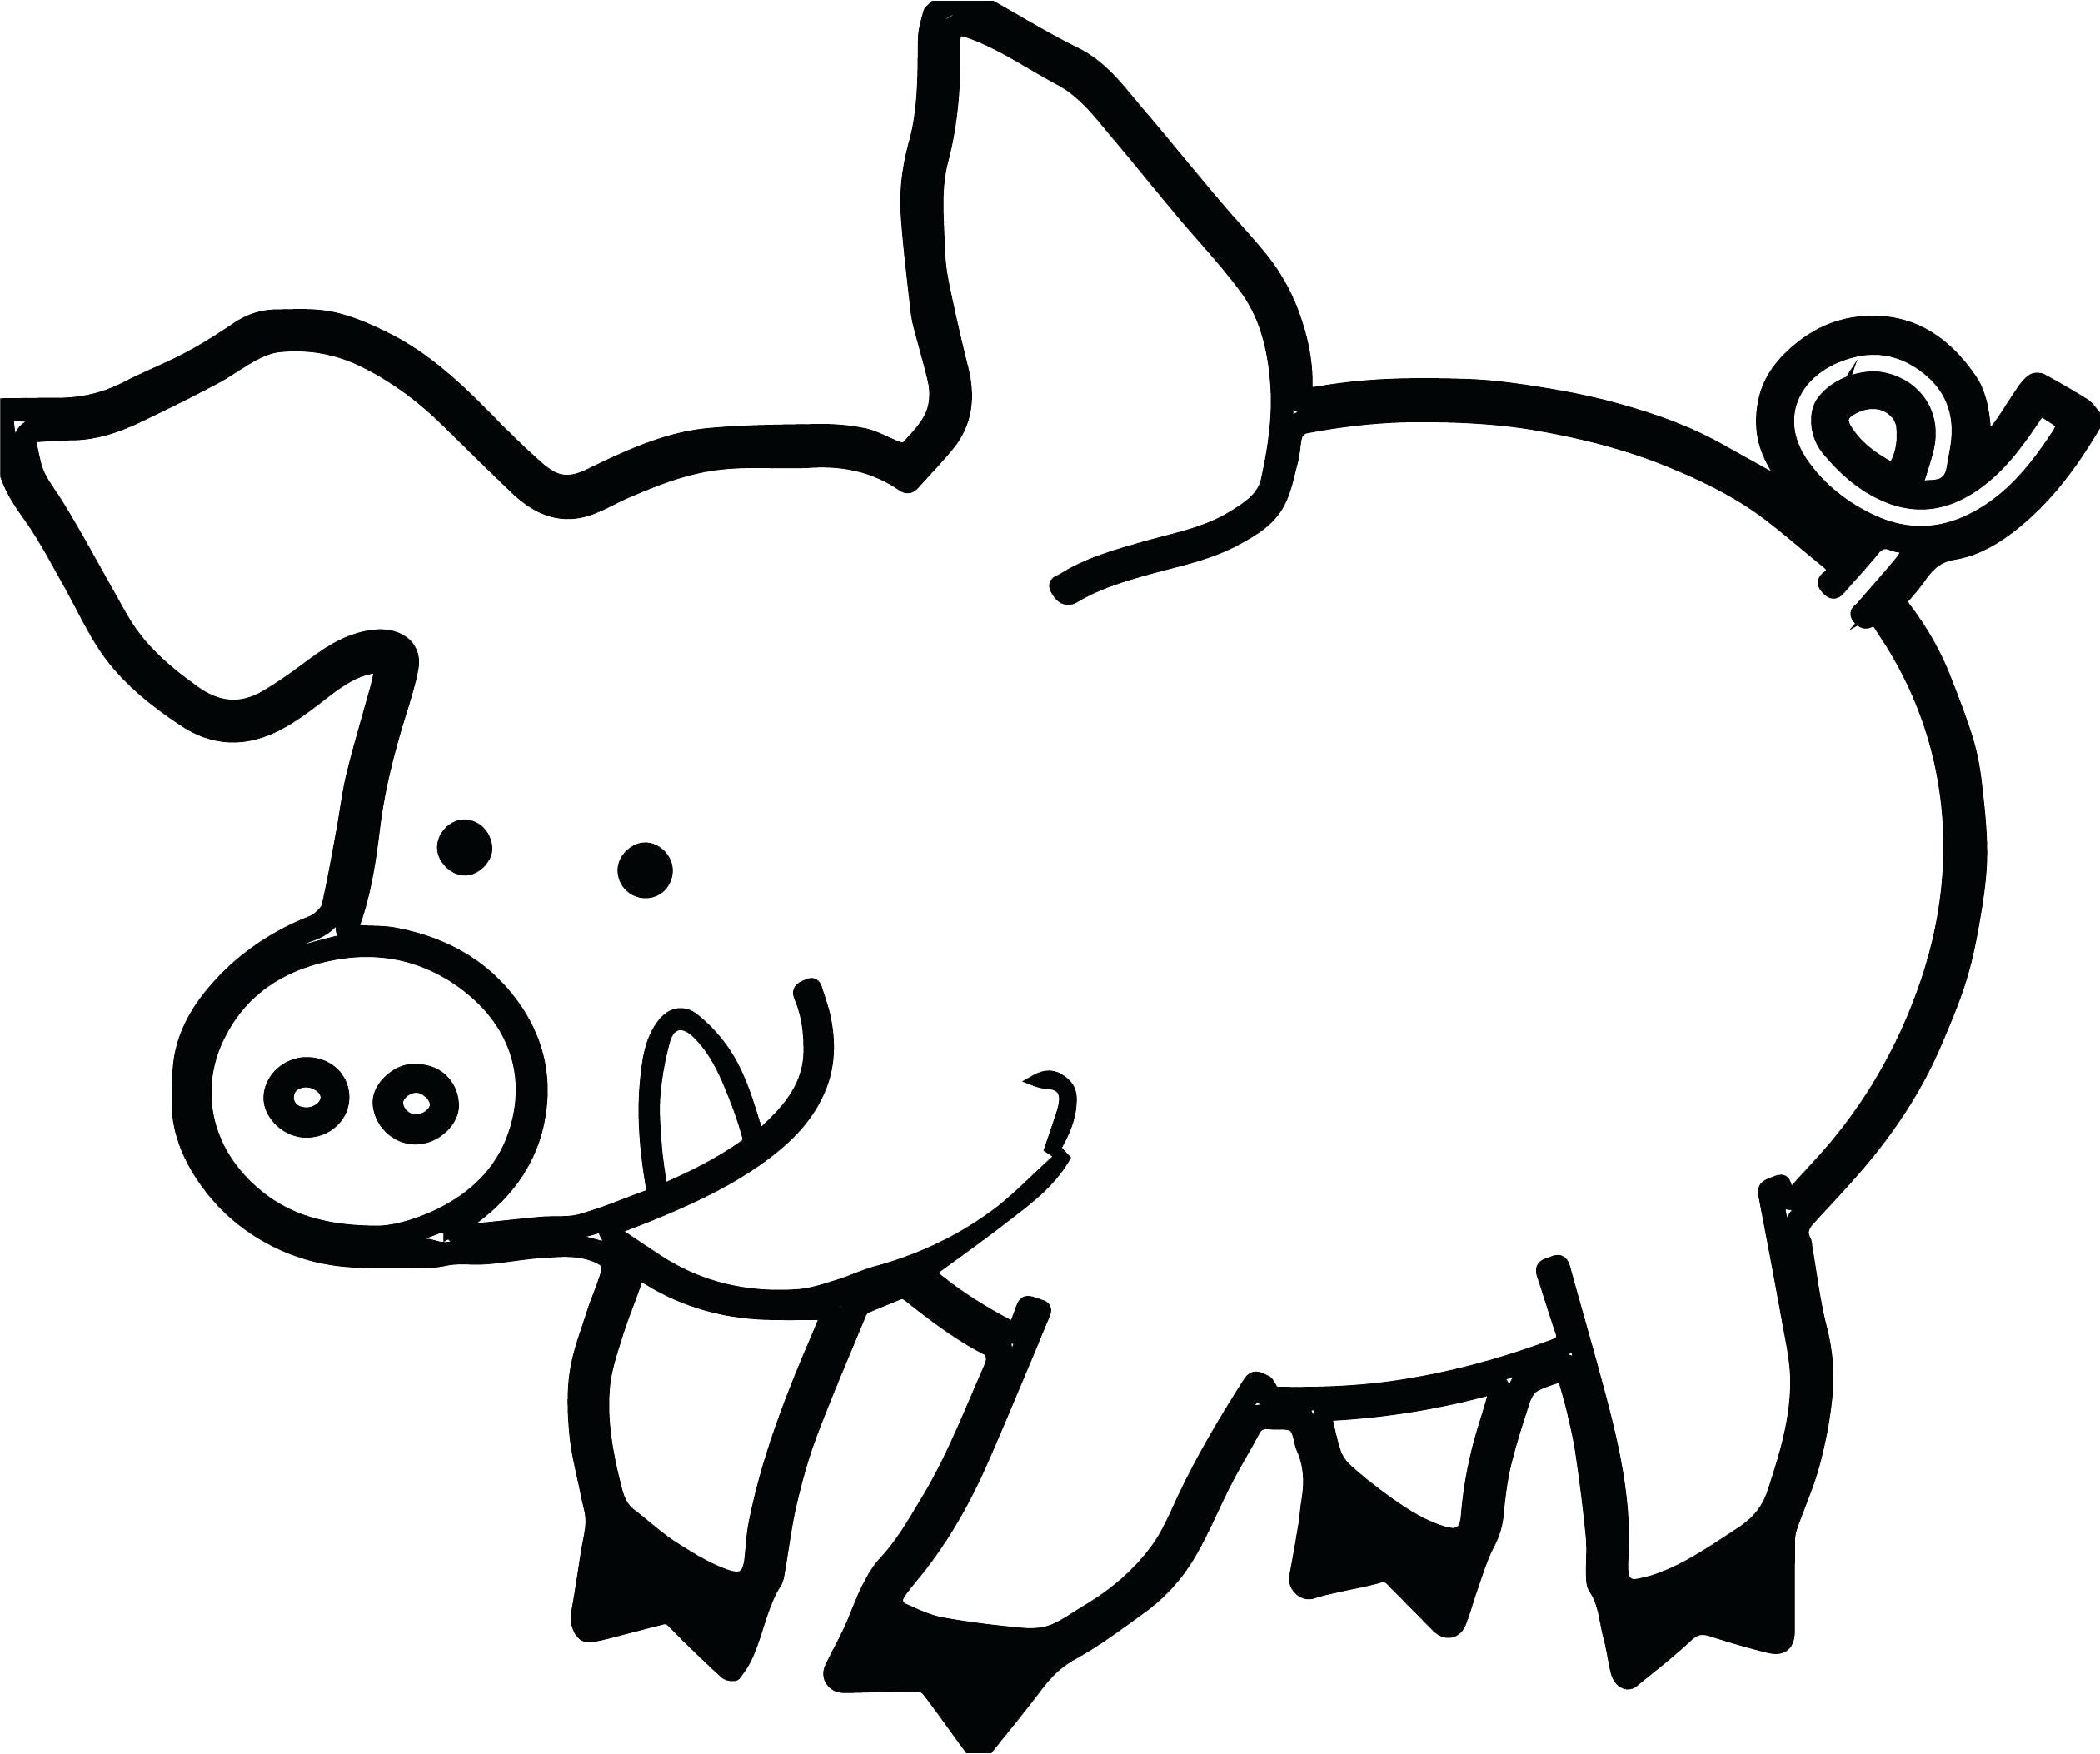 Pig Face Drawing 35 20 Clipart Black And White.